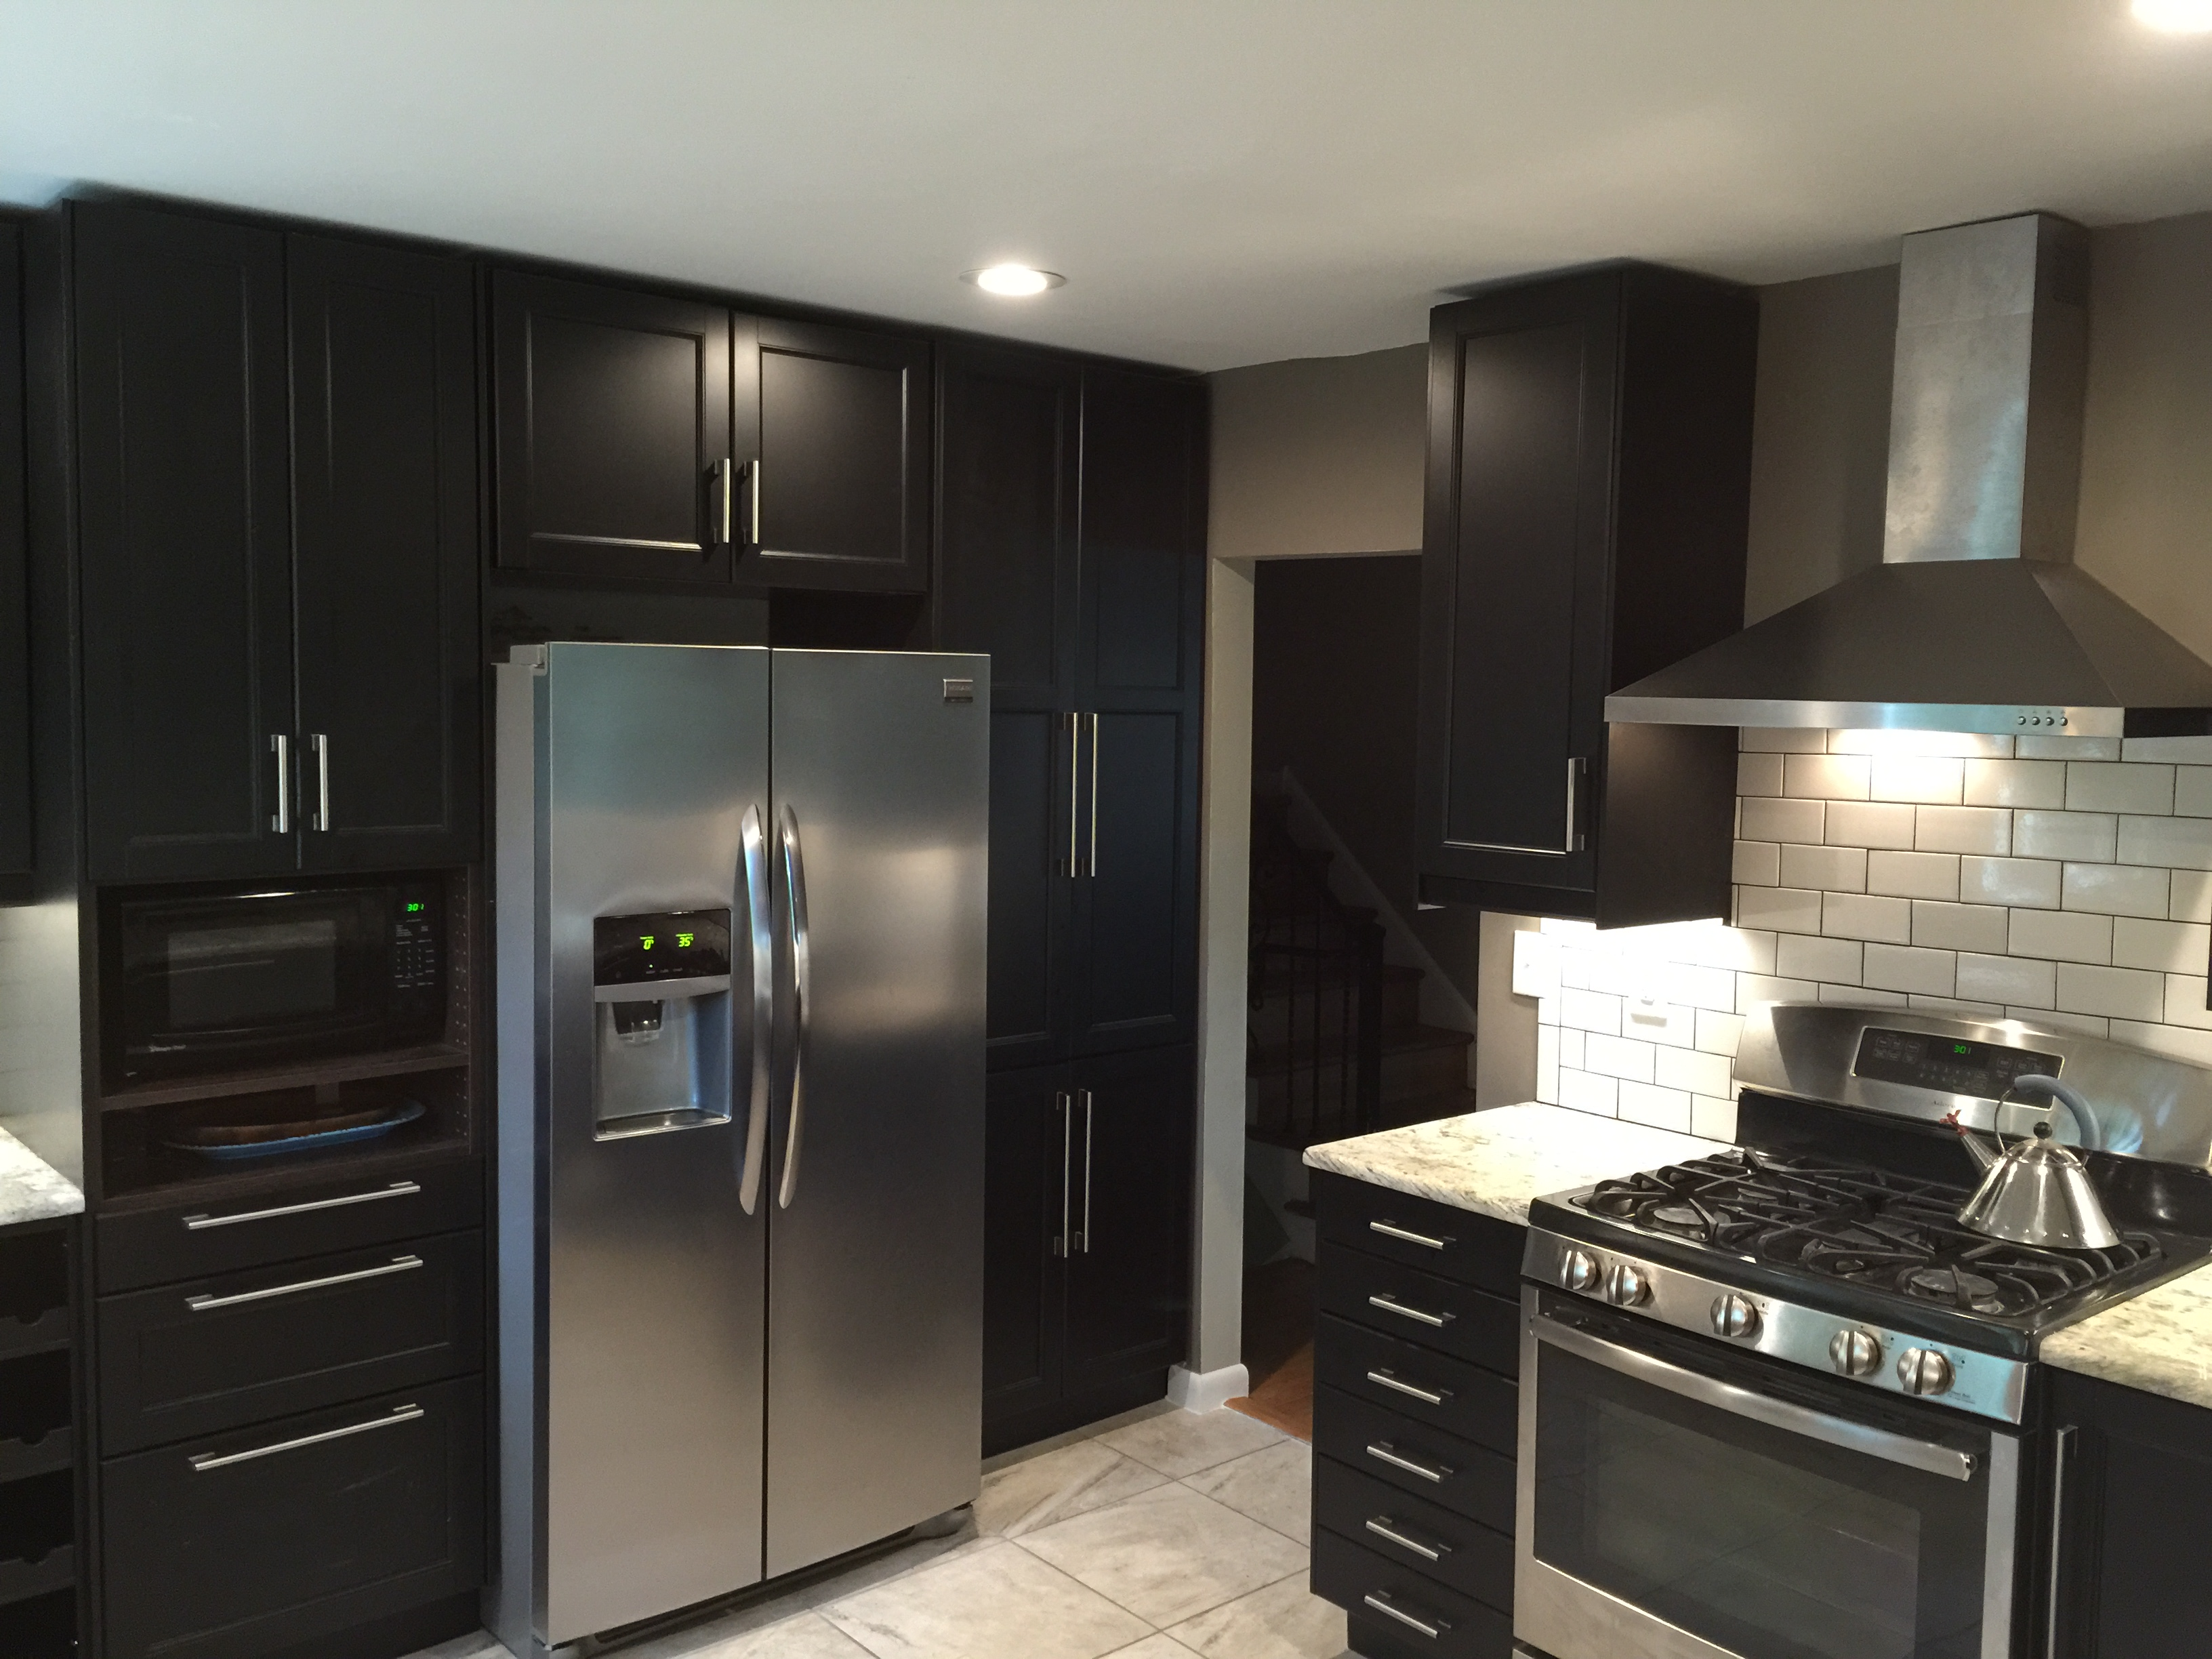 An ikea kitchen renovation for serious chefs with style for Kitchen cabinets at ikea